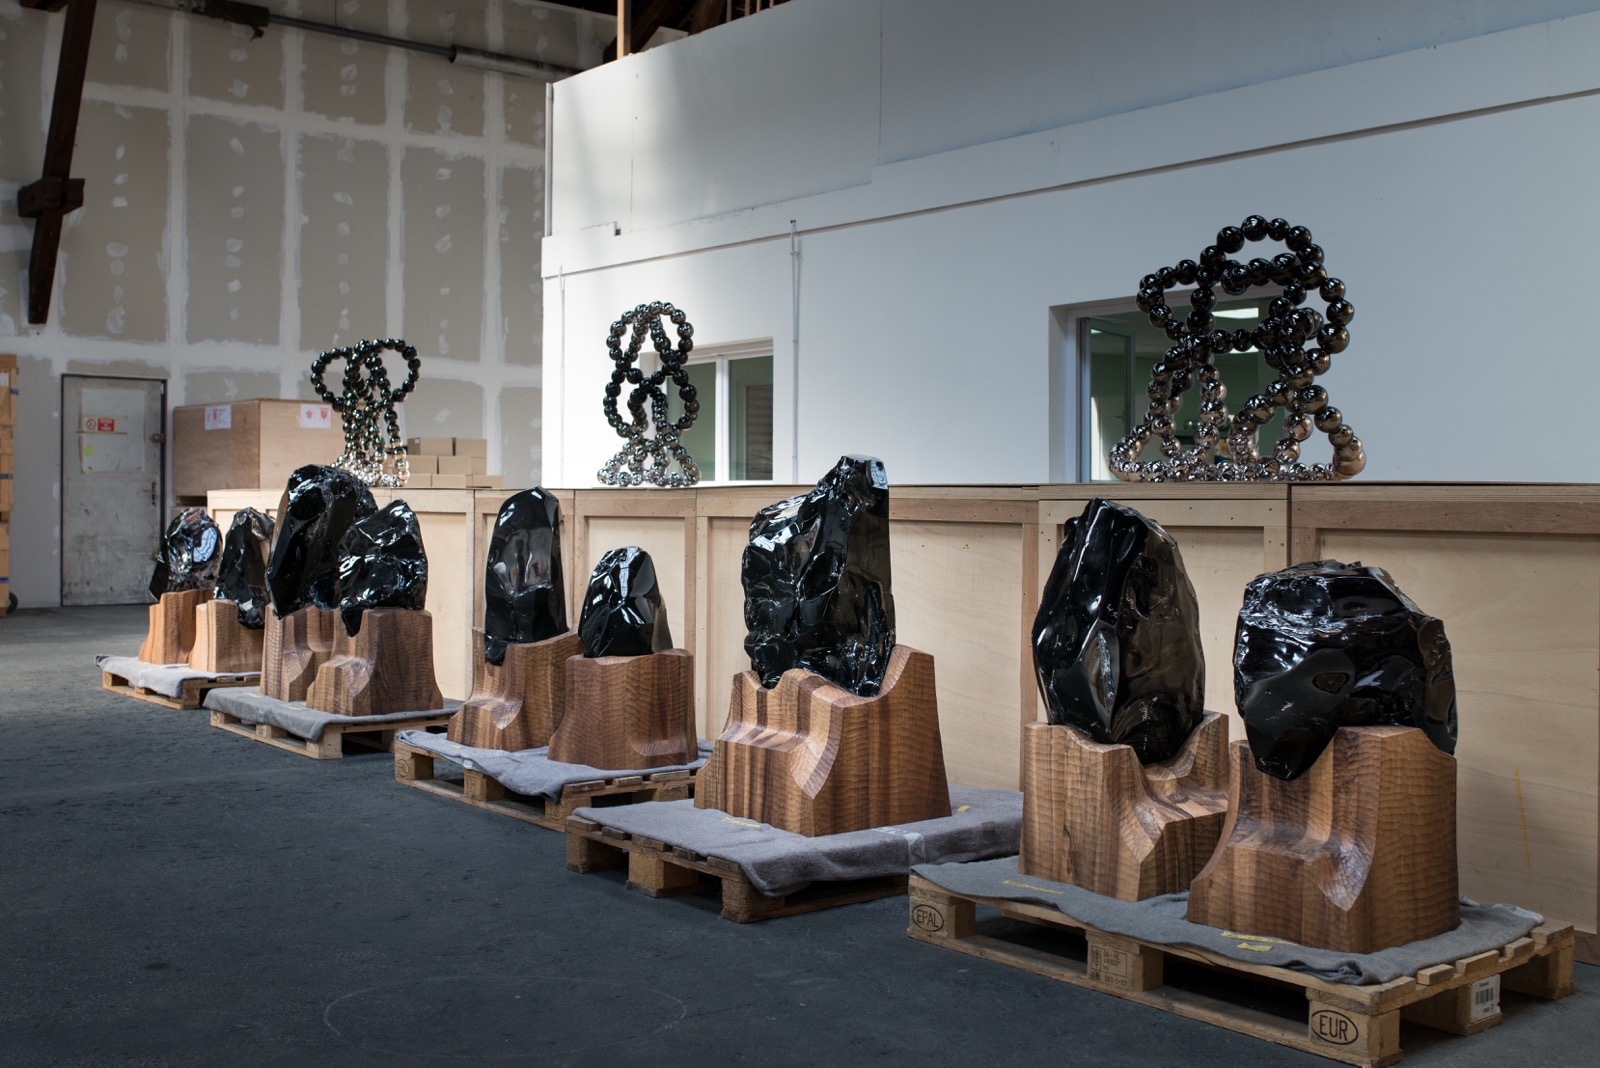 Invisibility Faces, nine quaint and primitive self-portraits made of black obsidian.